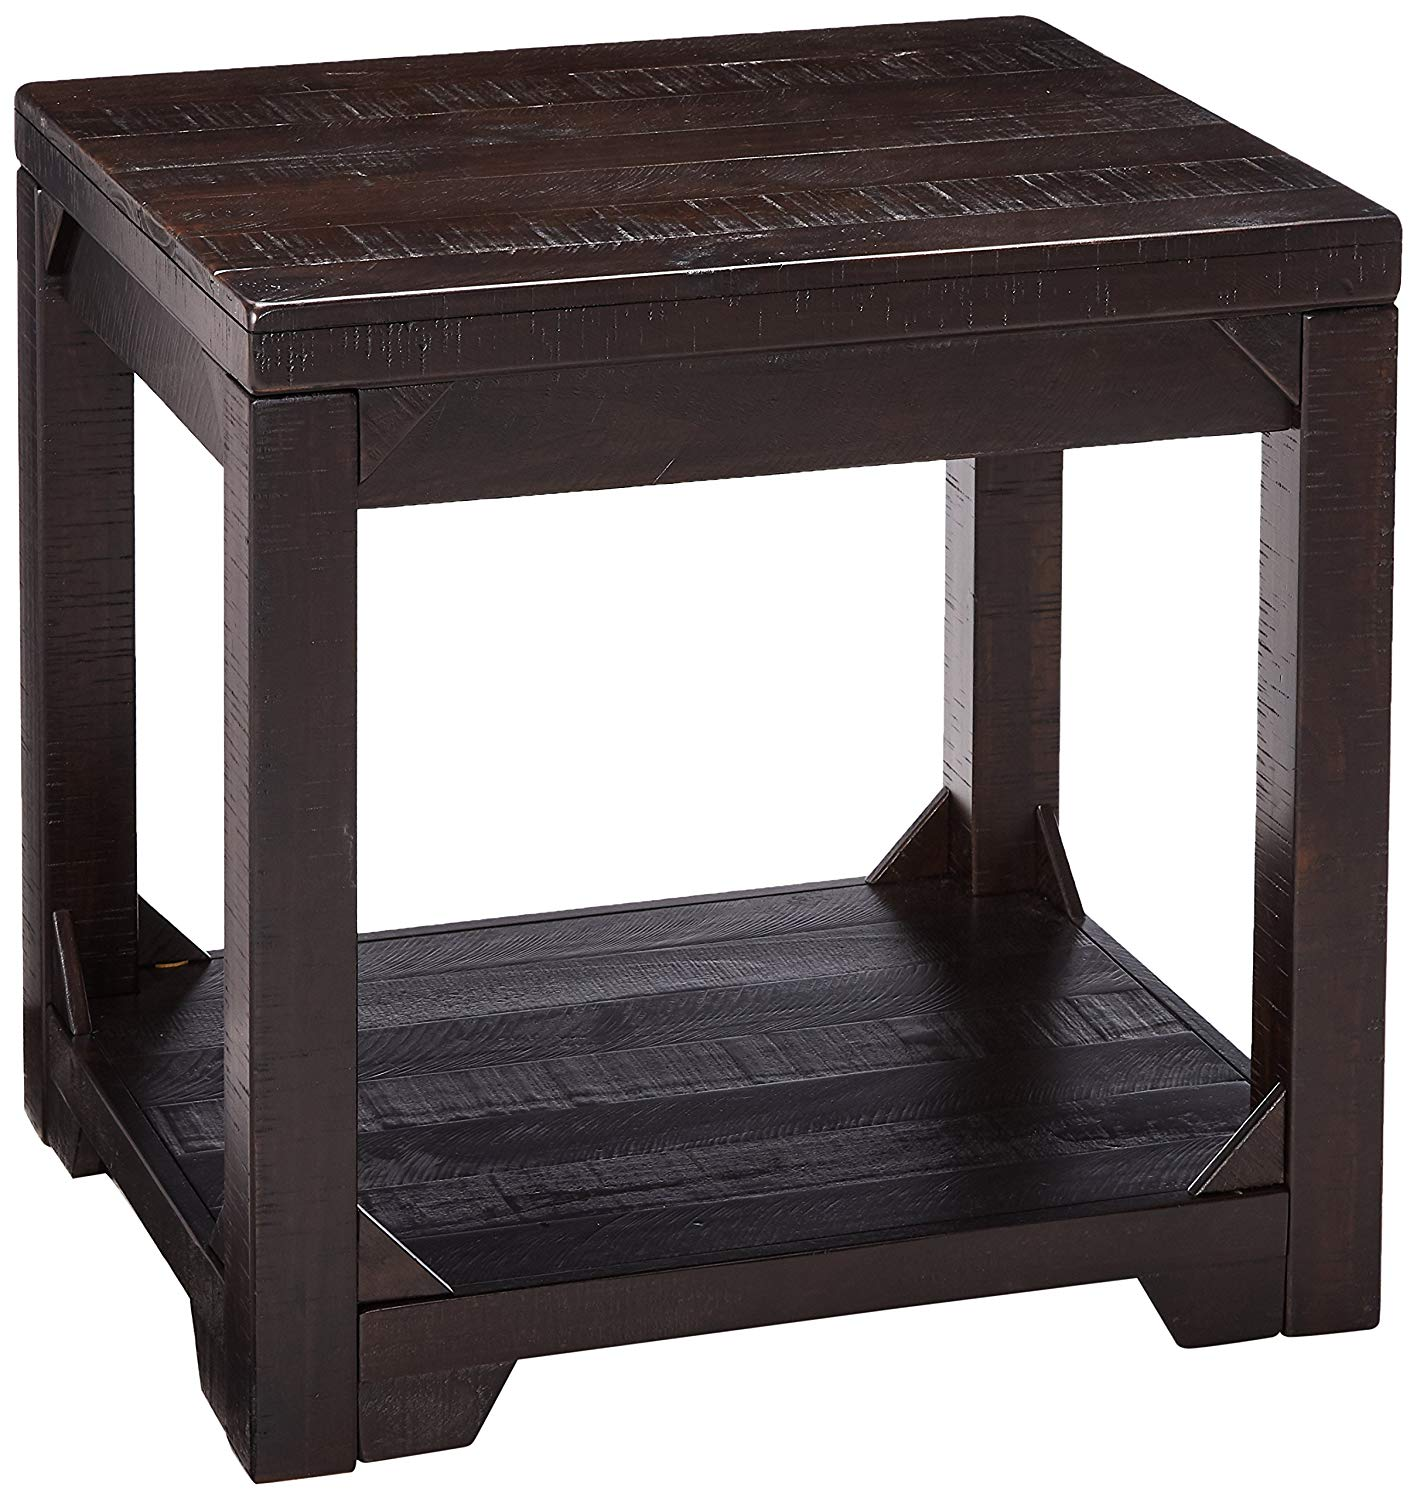 signature design ashley rogness rectangular rustic brown end tables table kitchen dining tube legs weathered gray coffee alan white furniture two round queen size bedroom suites